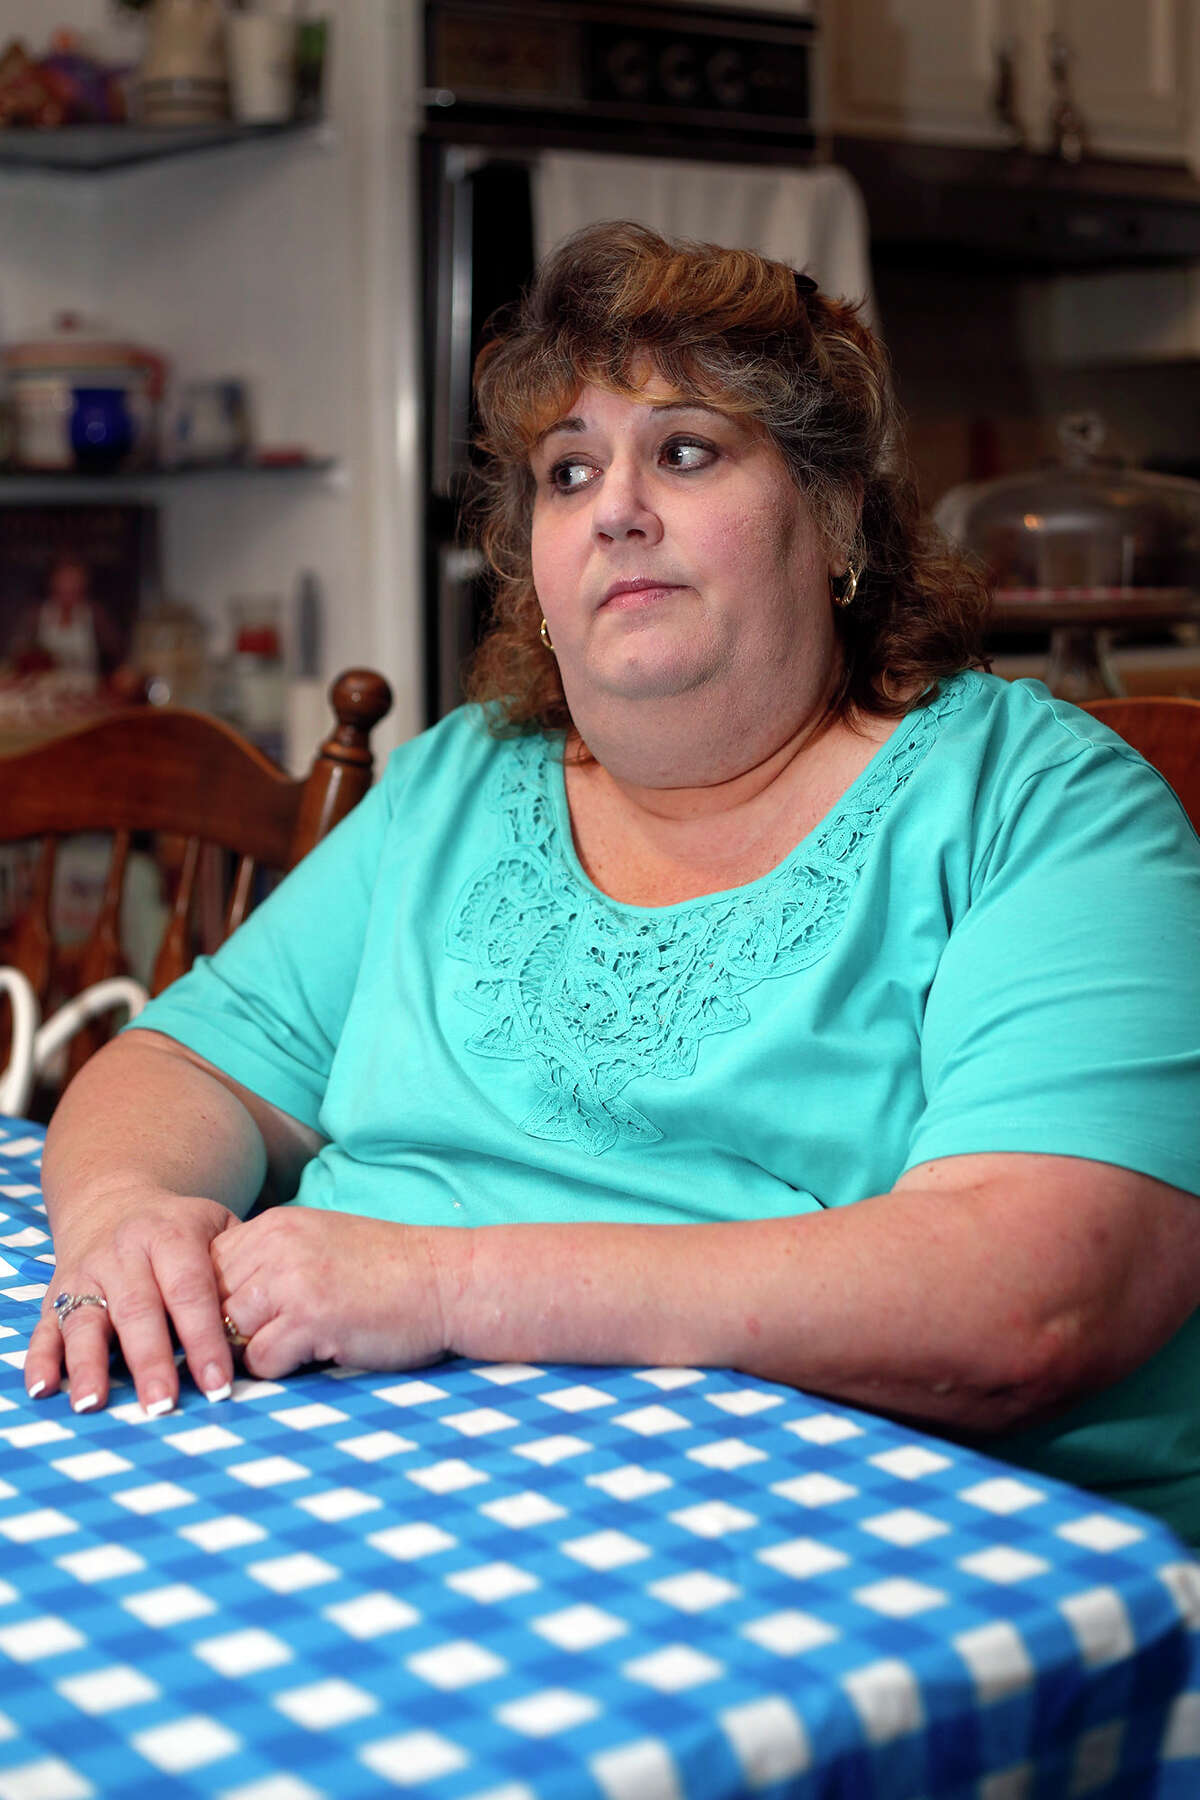 Valerie Riviello discusses how she felt the Veteran's Association is mistreating certain patients, inside her home on Tuesday, July 15th, 2014 in Clifton Park, N.Y. (Tom Brenner/ Special to the Times Union)